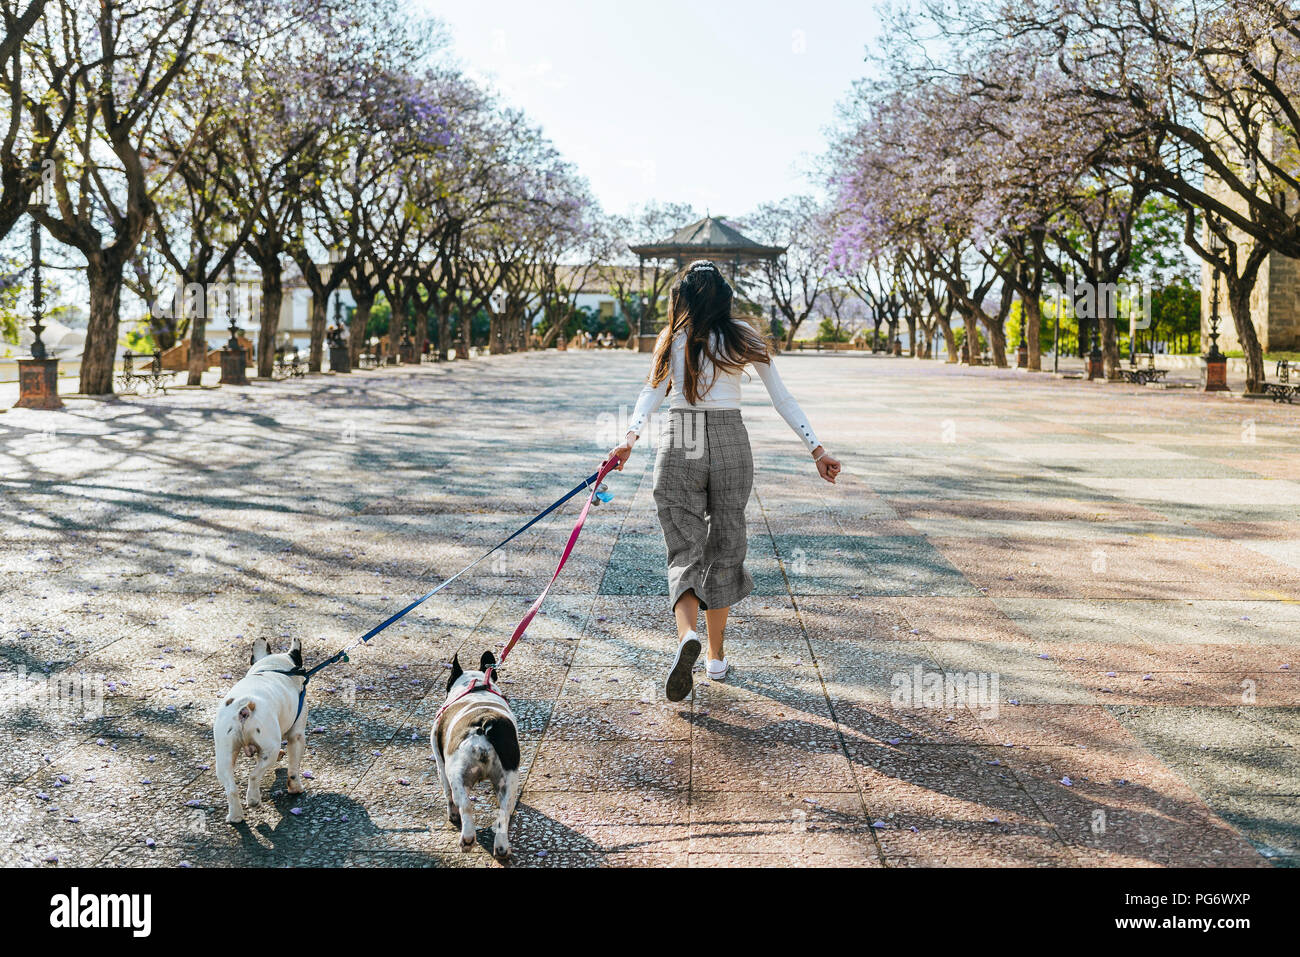 Spain, Andalusia, Jerez de la Frontera, Woman running with two dogs on square - Stock Image